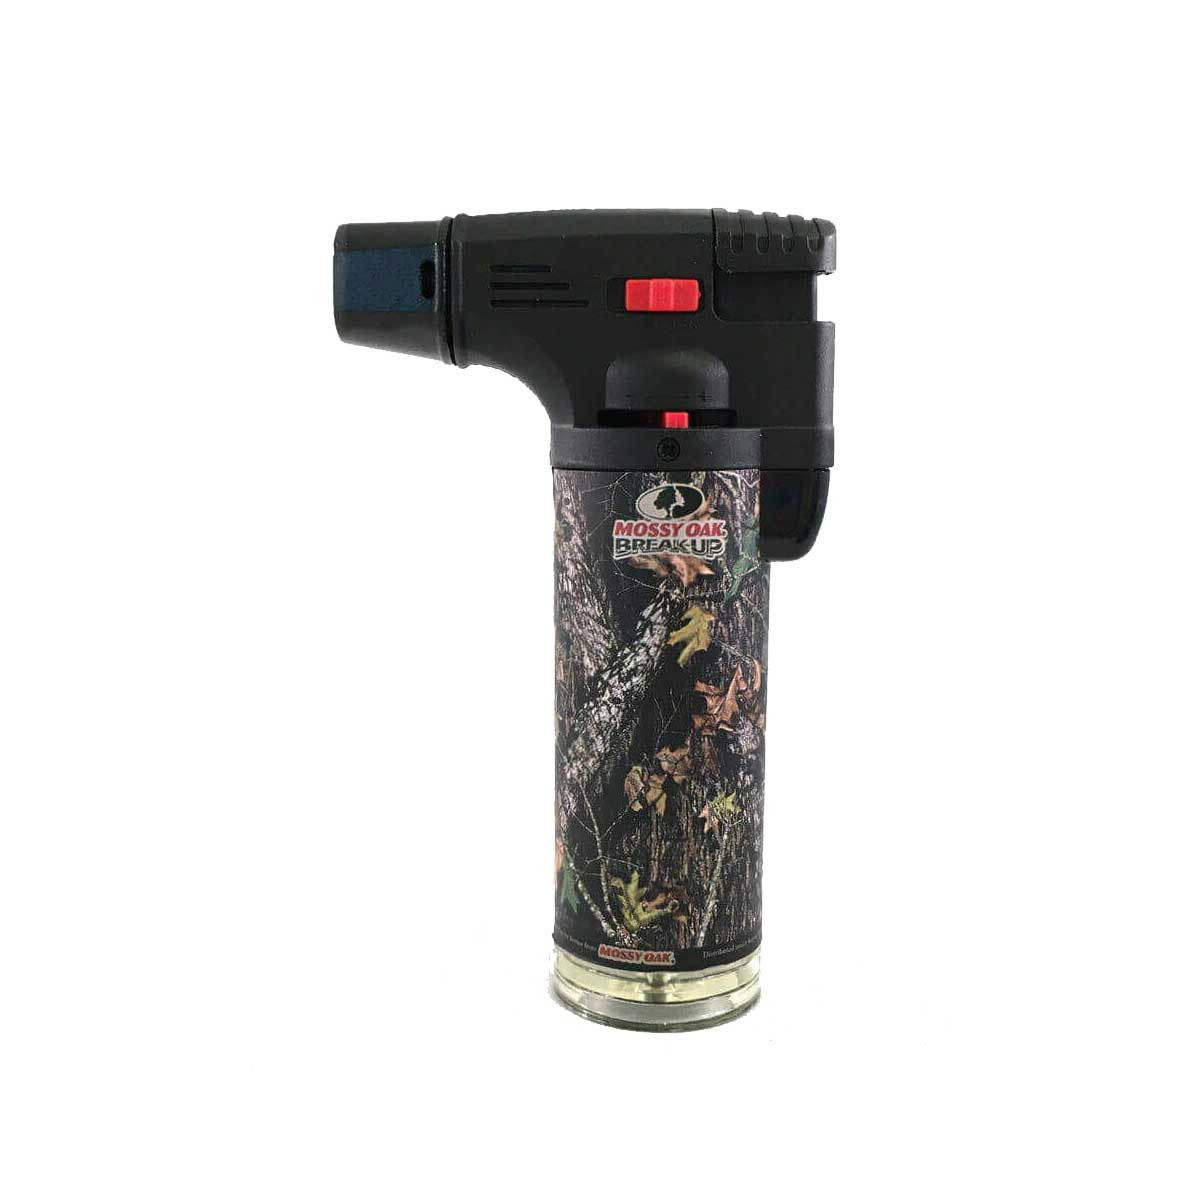 Eagle Torch Gun Mossy Oak 15 Pcs